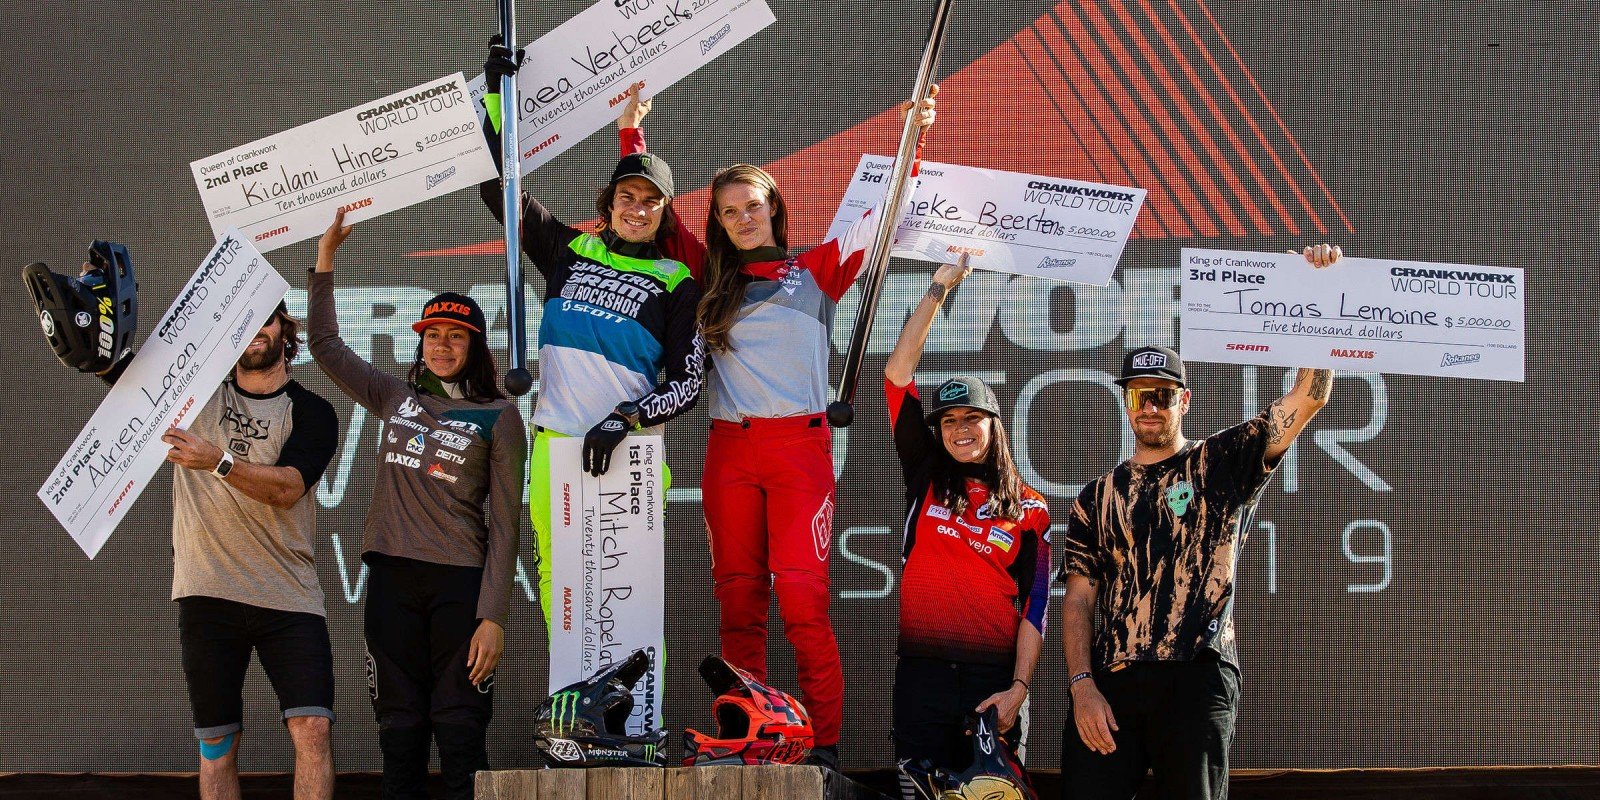 Monster Energy's Mitch Ropelato (USA) has taken home the King of Crankworx title for 2019!